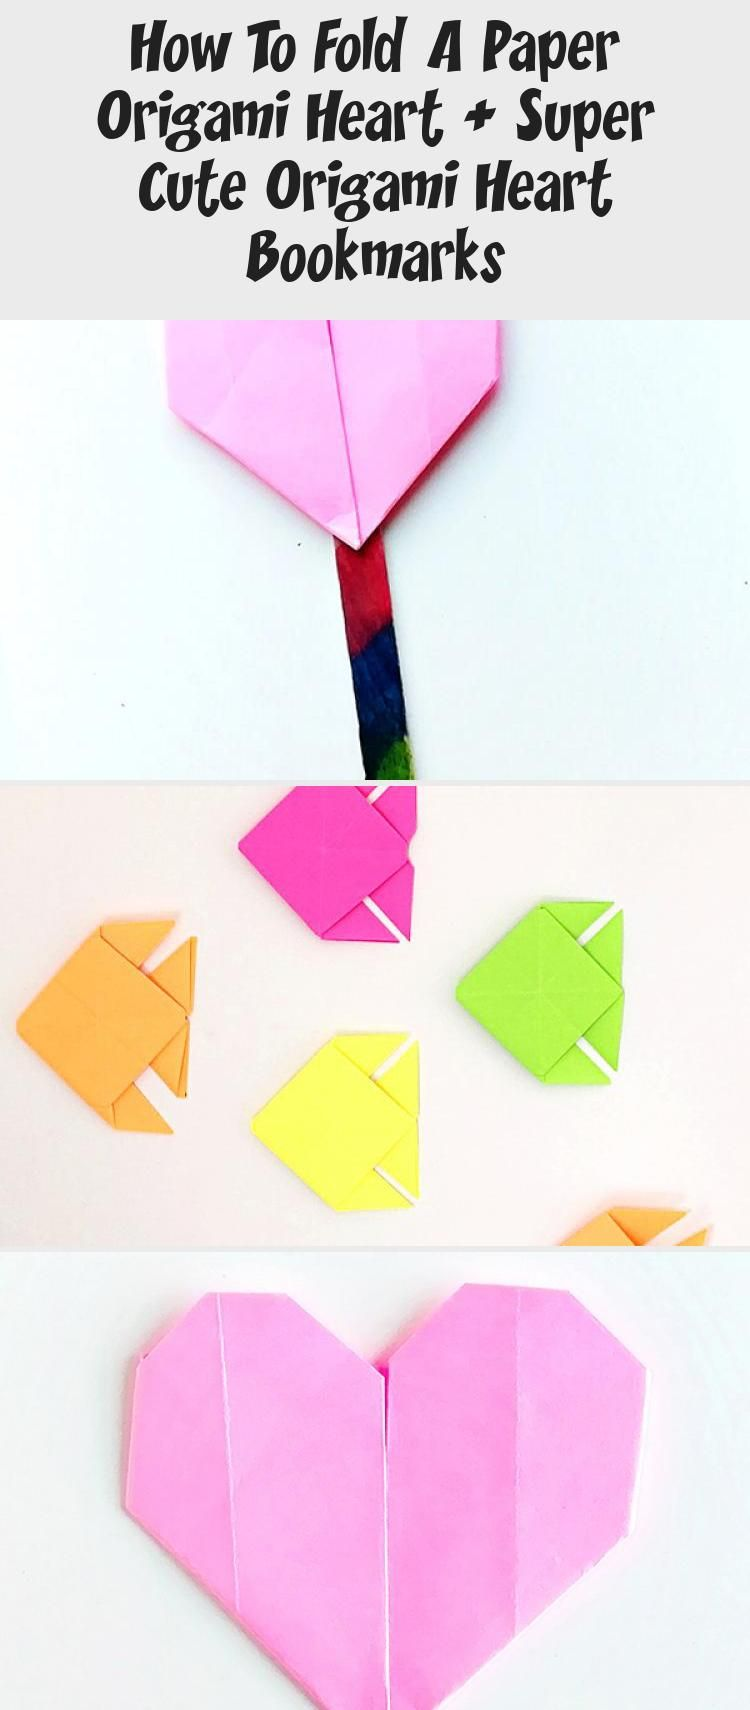 How to Make Origami Heart Love Notes - Step by Step Folding ... | 1710x750